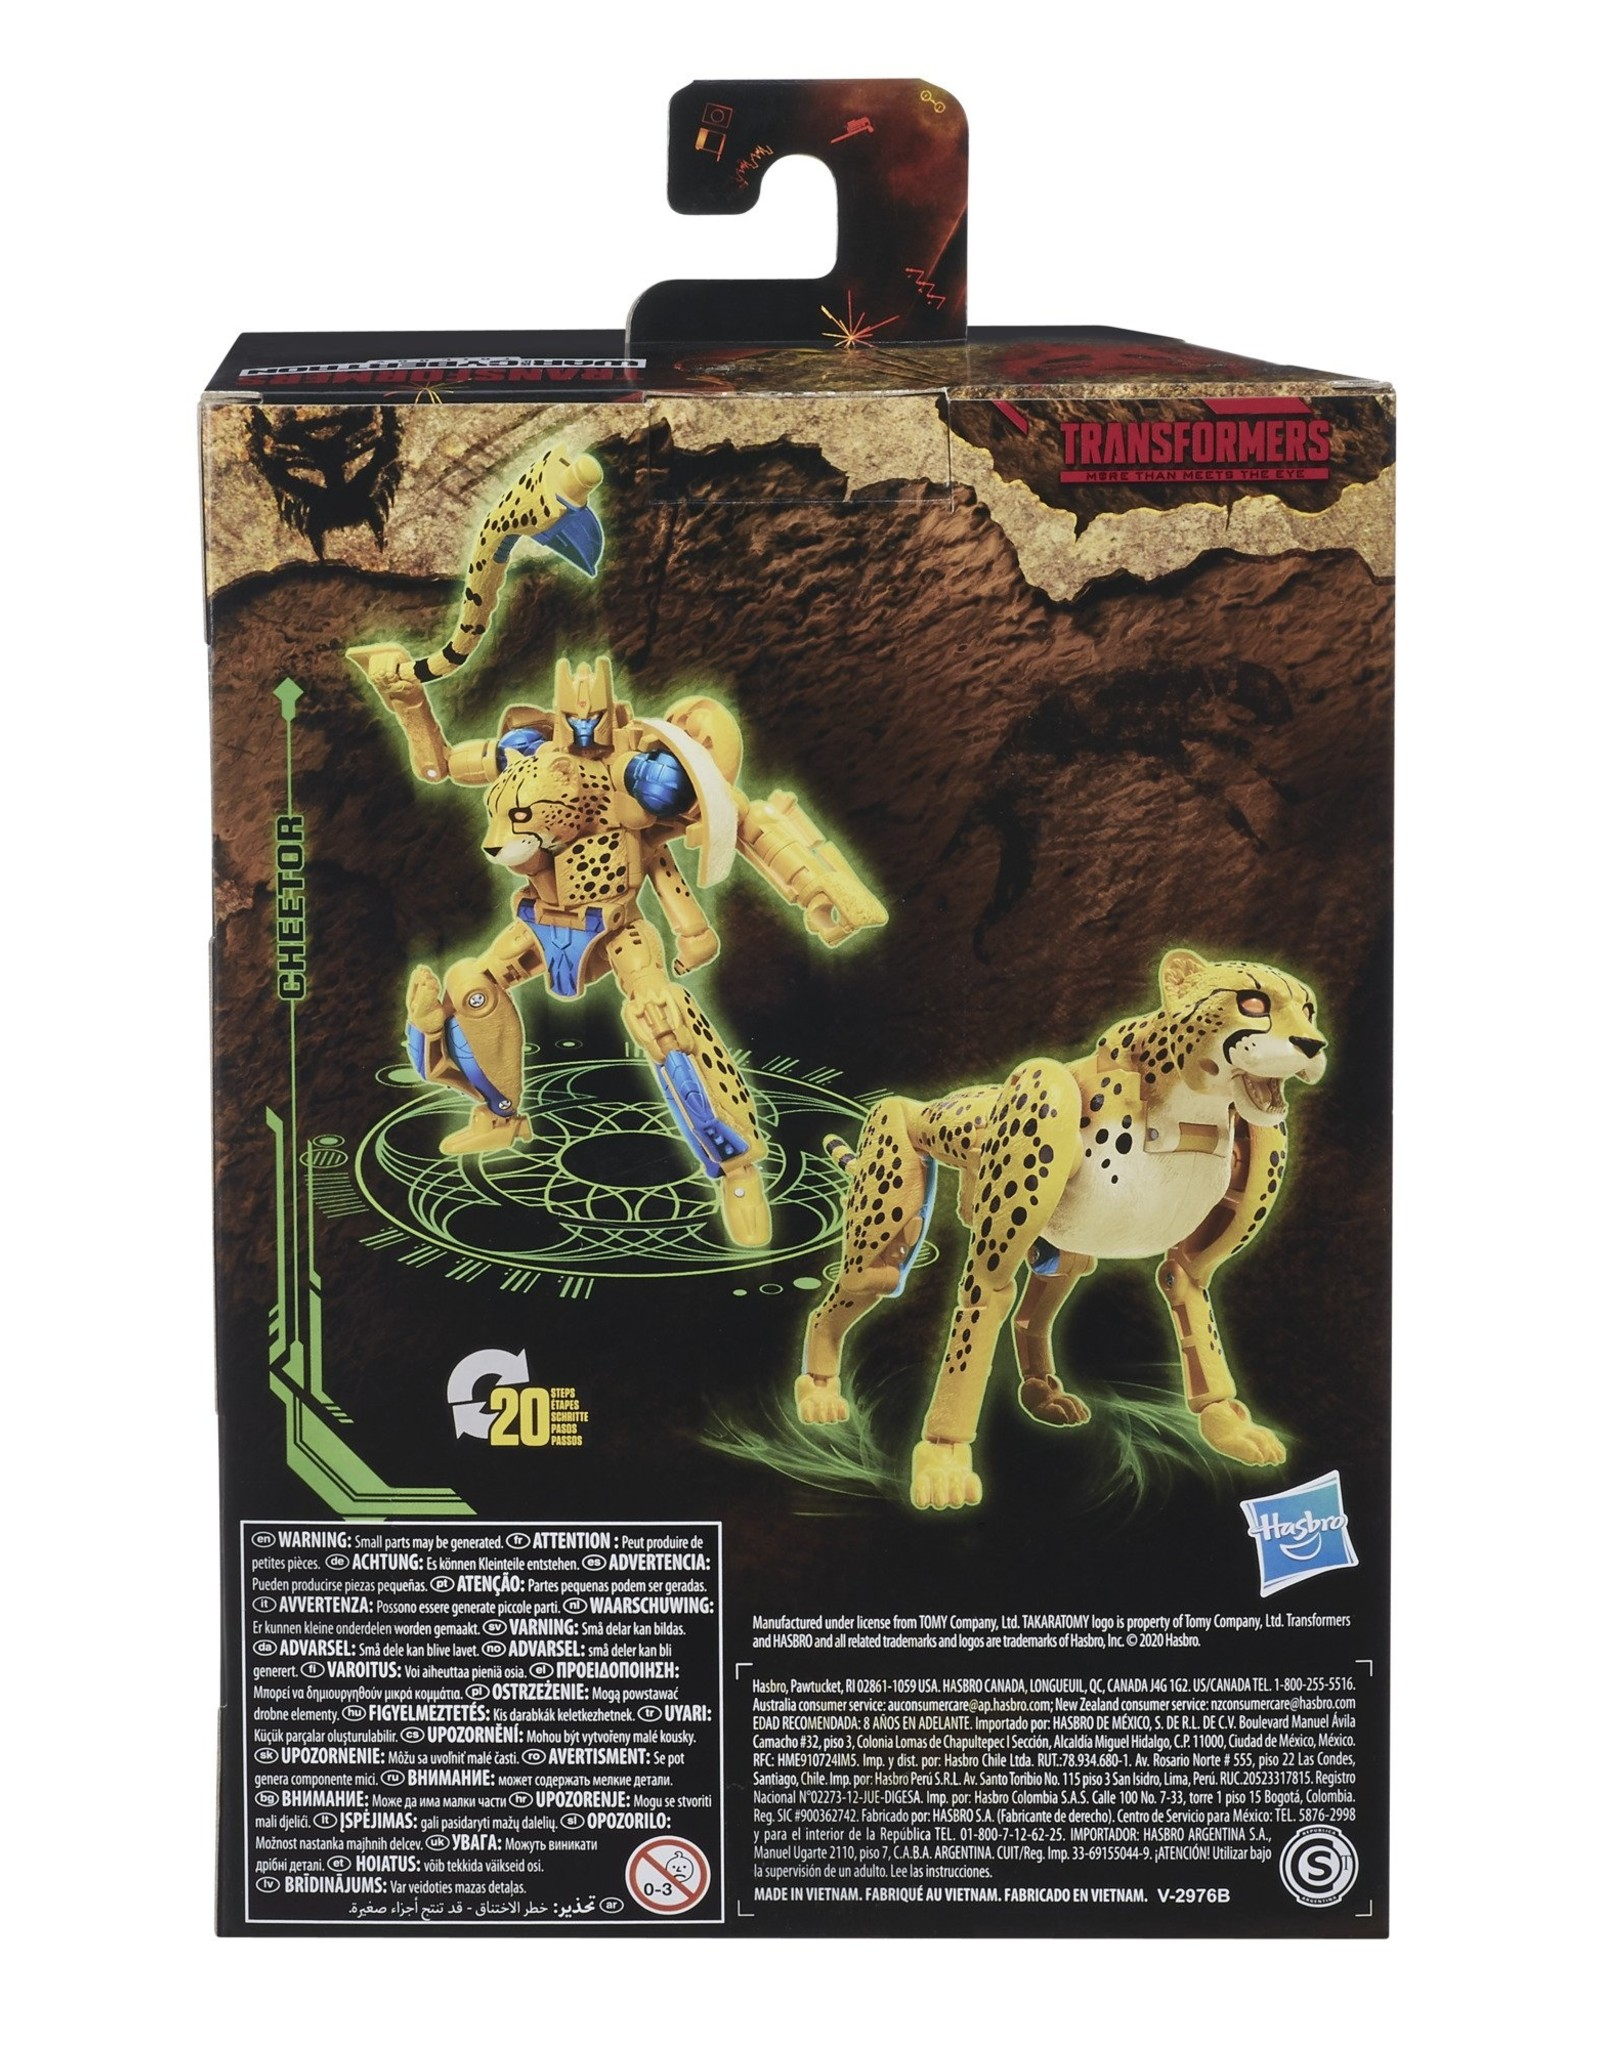 HASBRO Transformers Generations War for Cybertron: Kingdom Deluxe WFC-K4 Cheetor